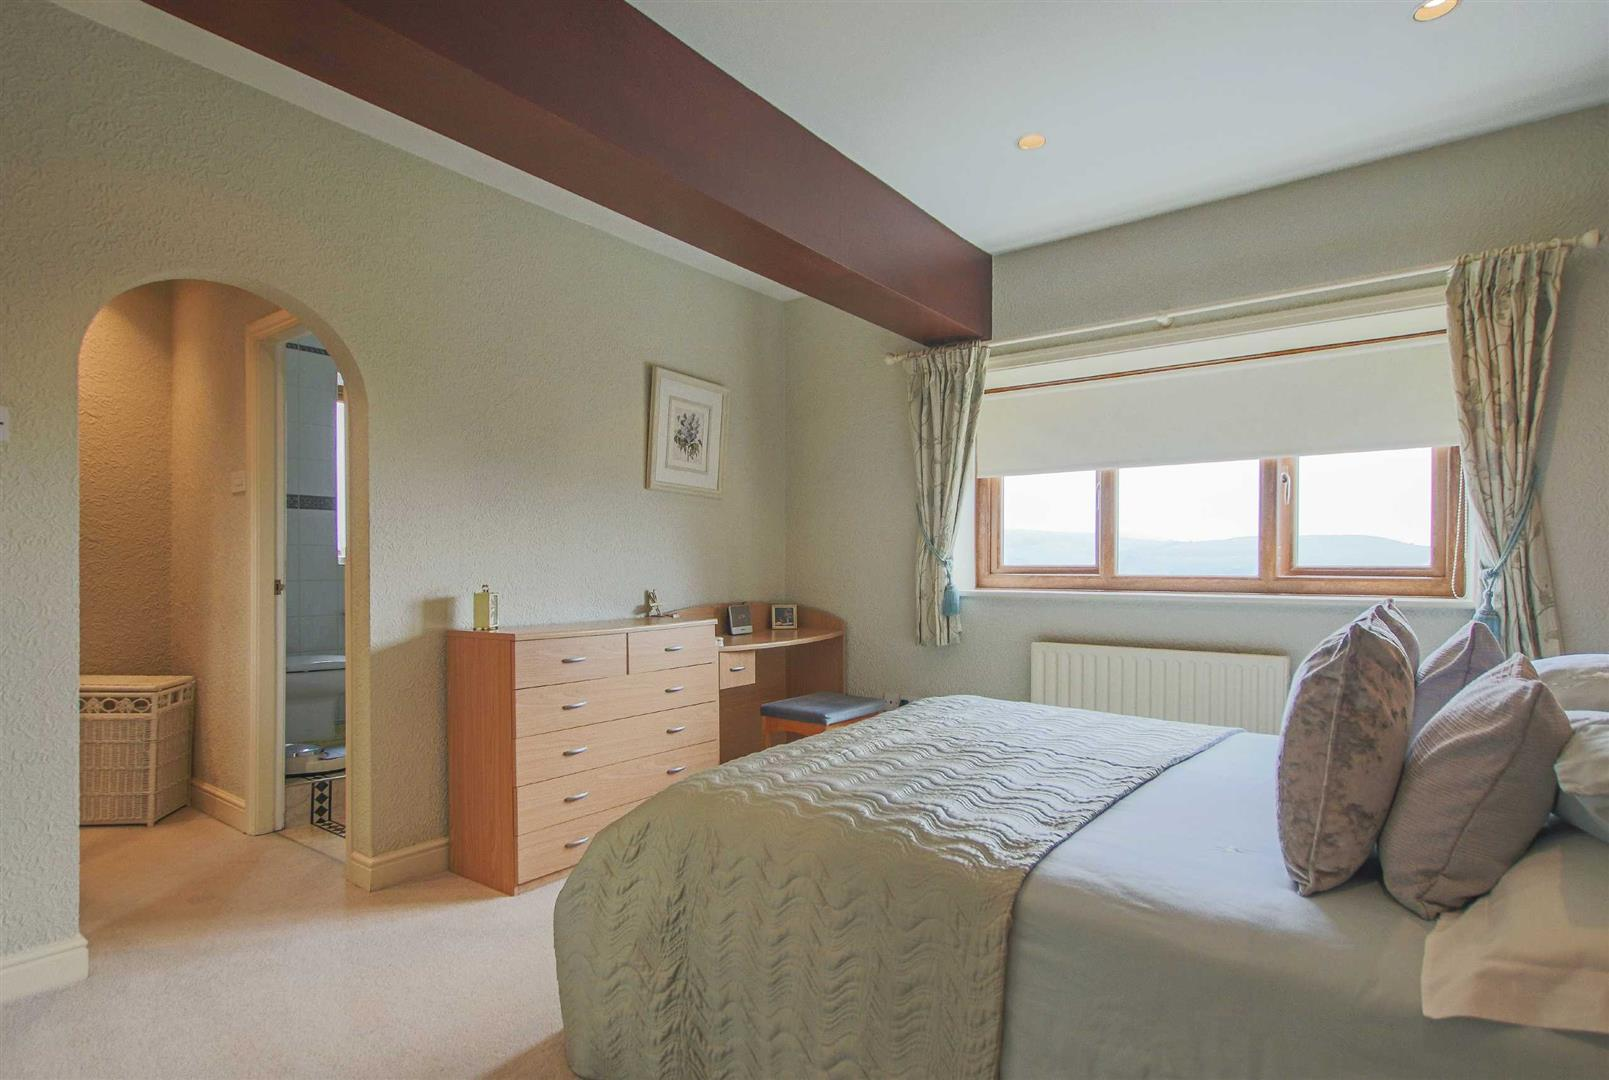 4 Bedroom Barn Conversion For Sale - p033135_06.jpg